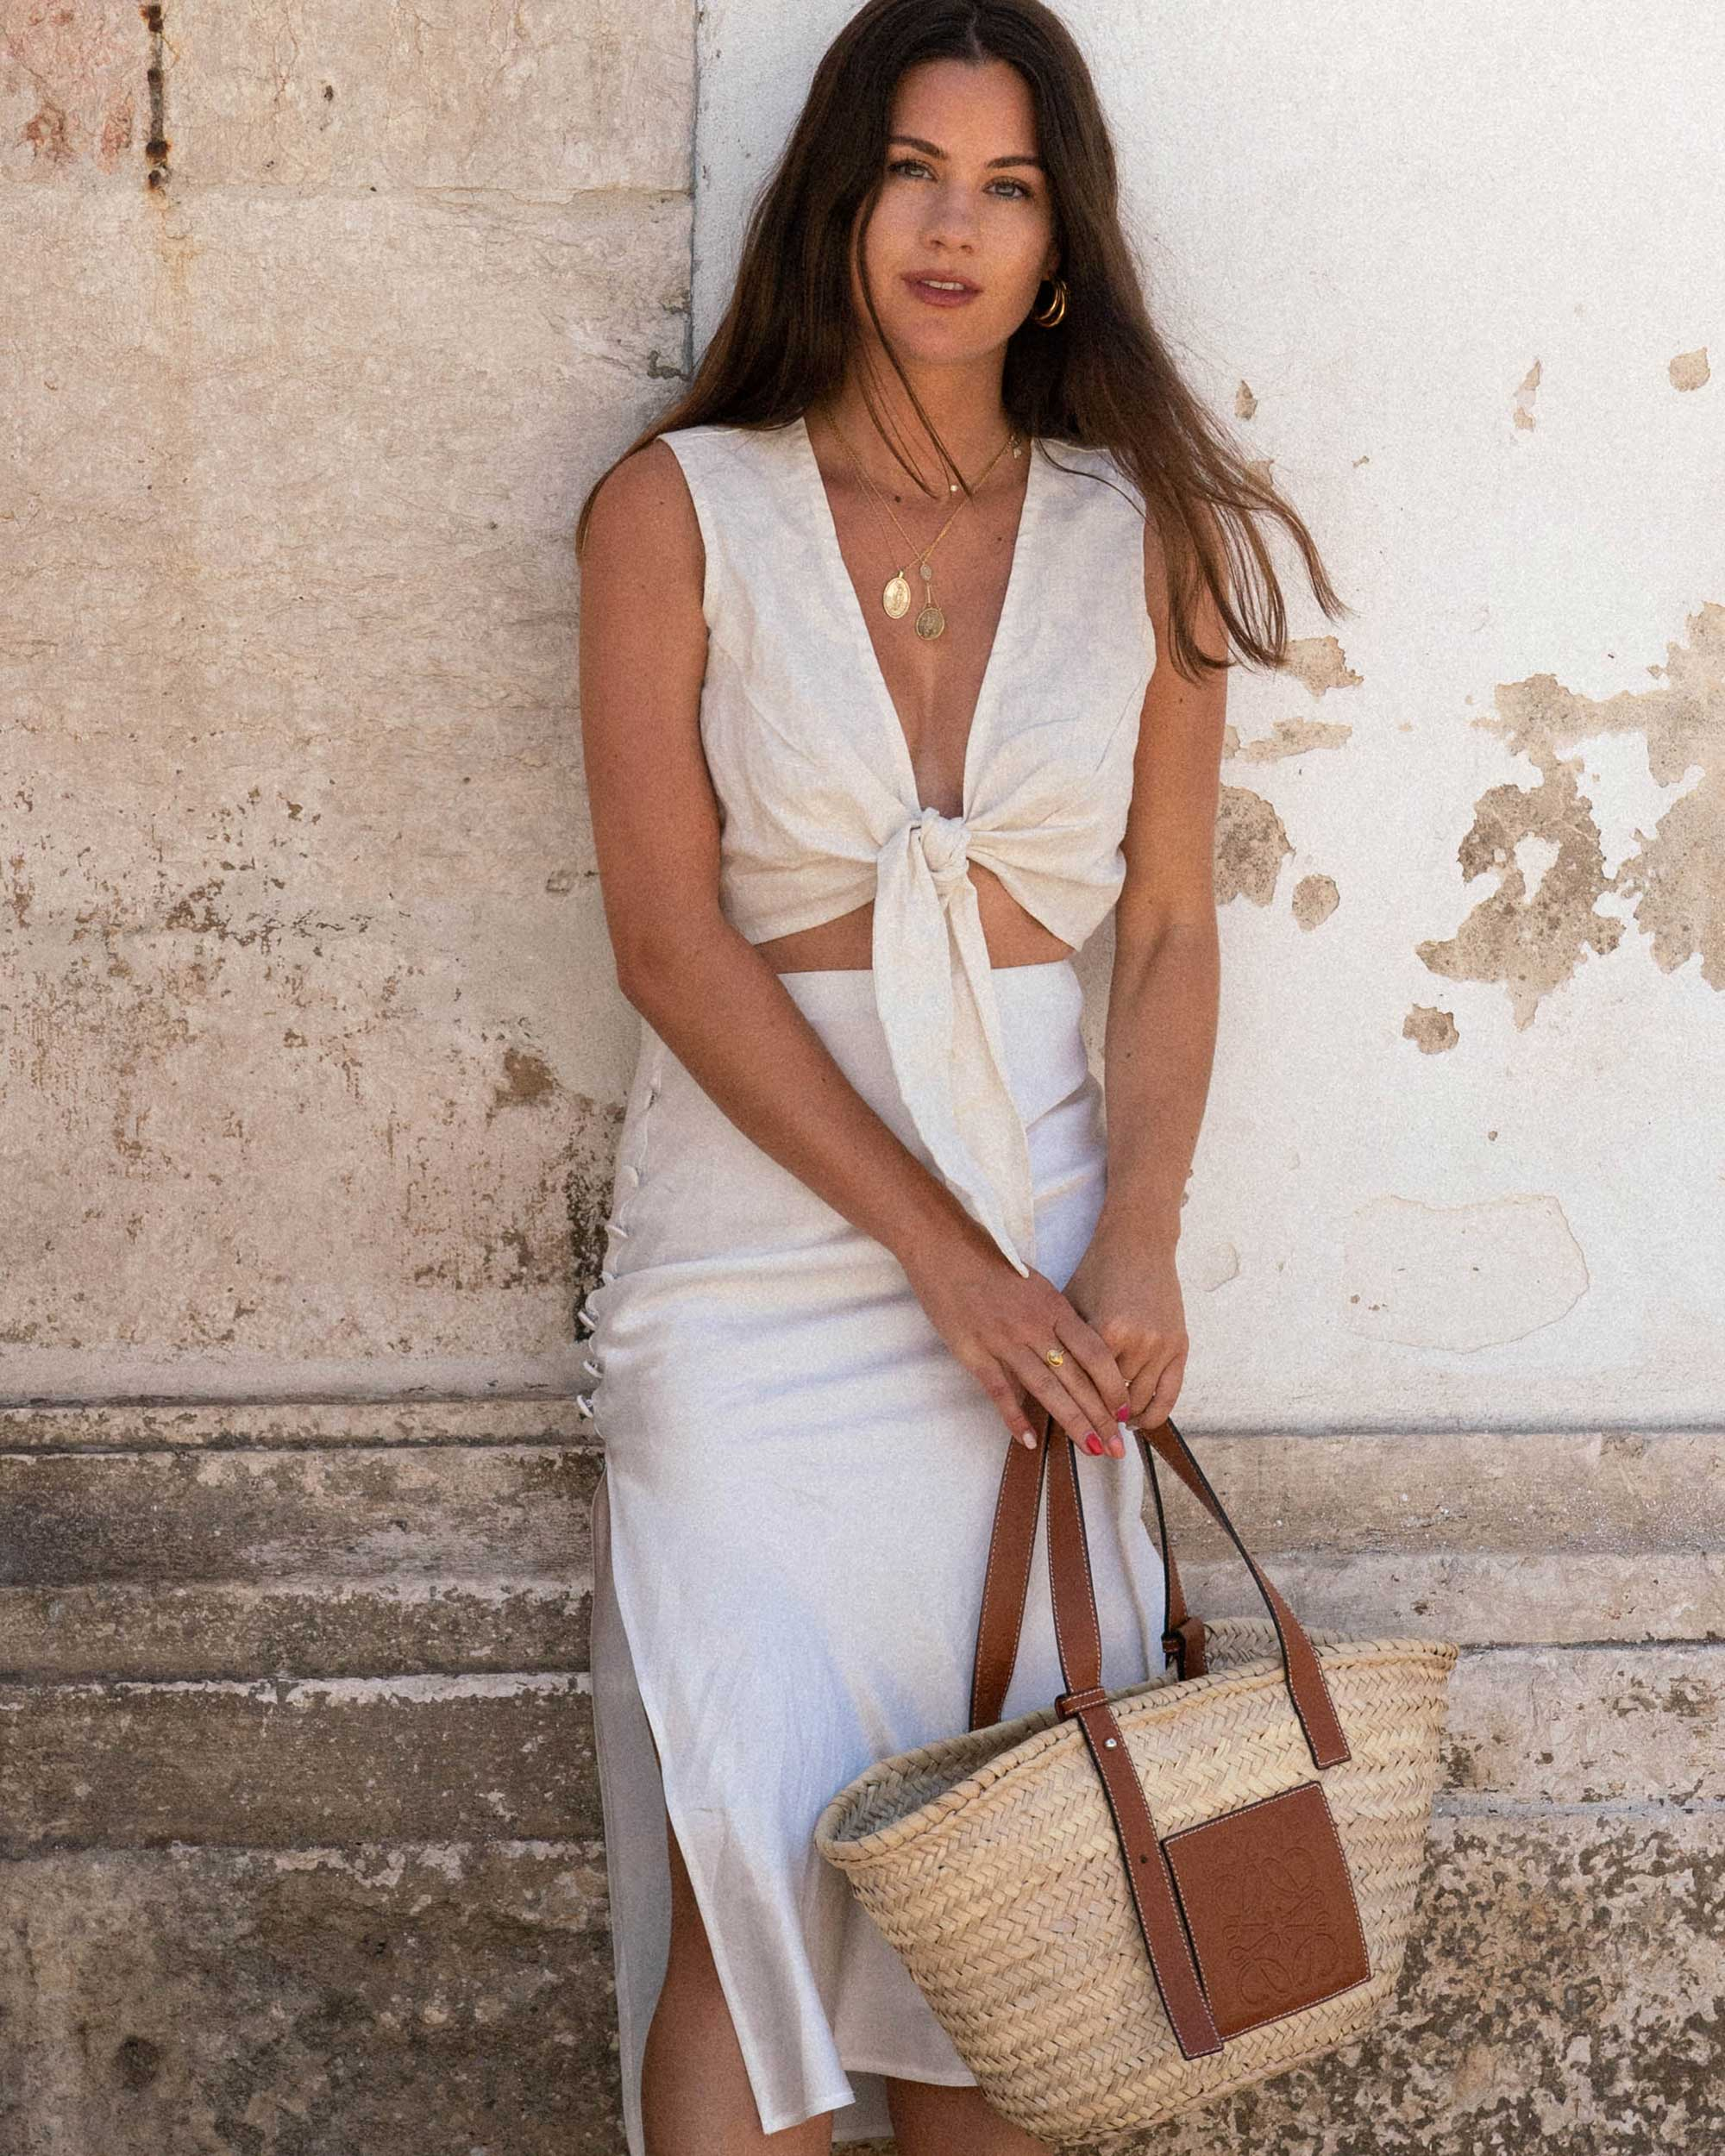 Sarah Butler of Sarah Styles Seattle wears Faithfull the Brand Marcie Plunging Cropped Tie Top and Loewe Raffia Basket Tote Bag in Lisbon, Portugal | @sarahchristine - 5.jpg